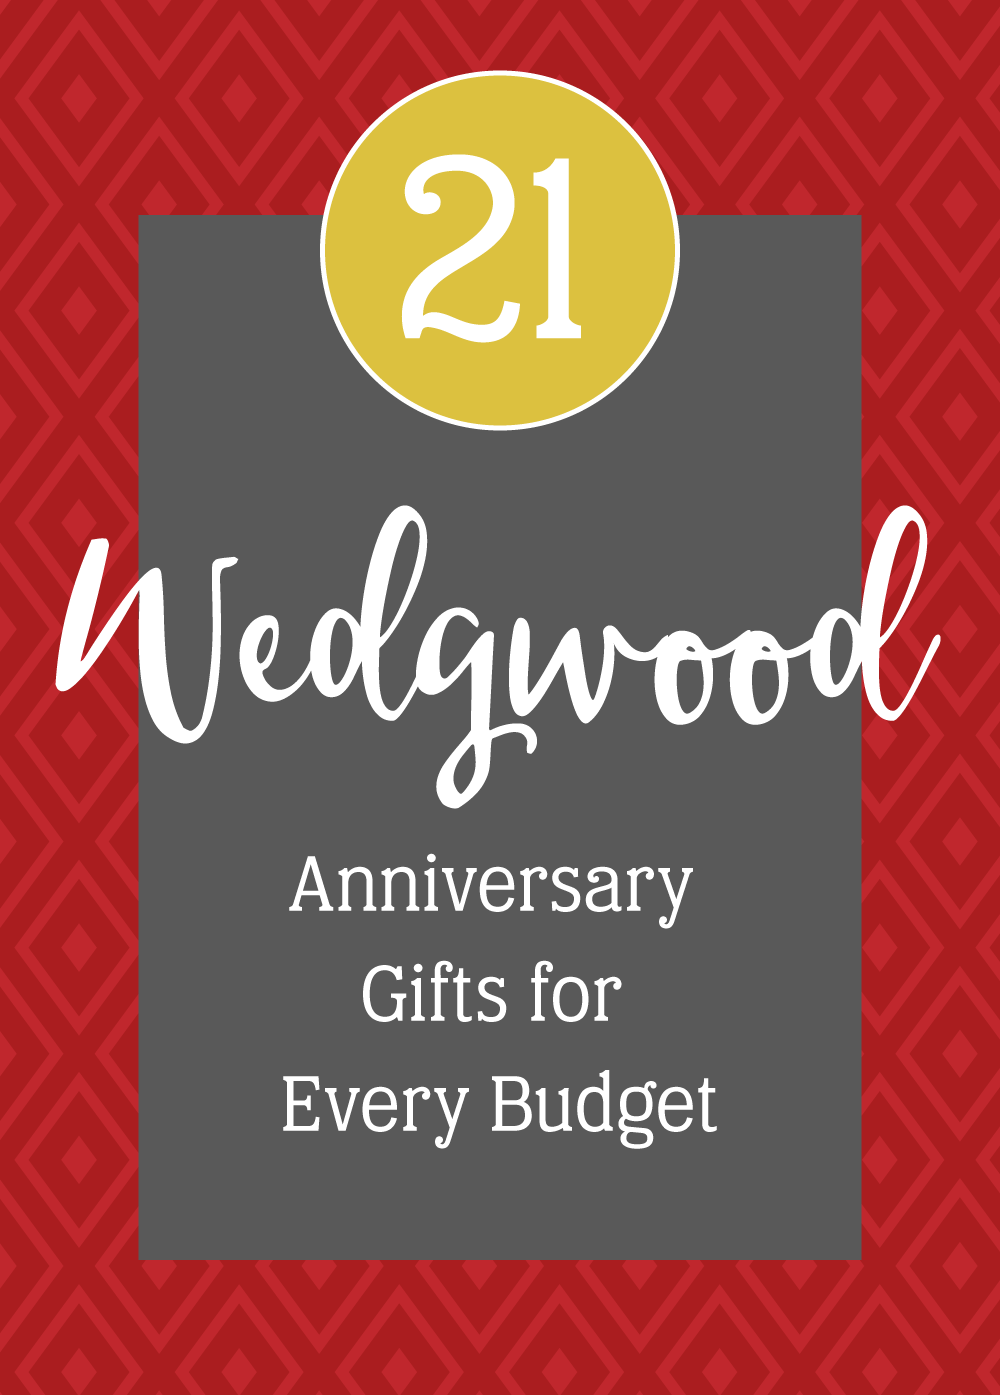 Featured Mobile Image for Wedgwood Anniversary Gifts for Every Budget